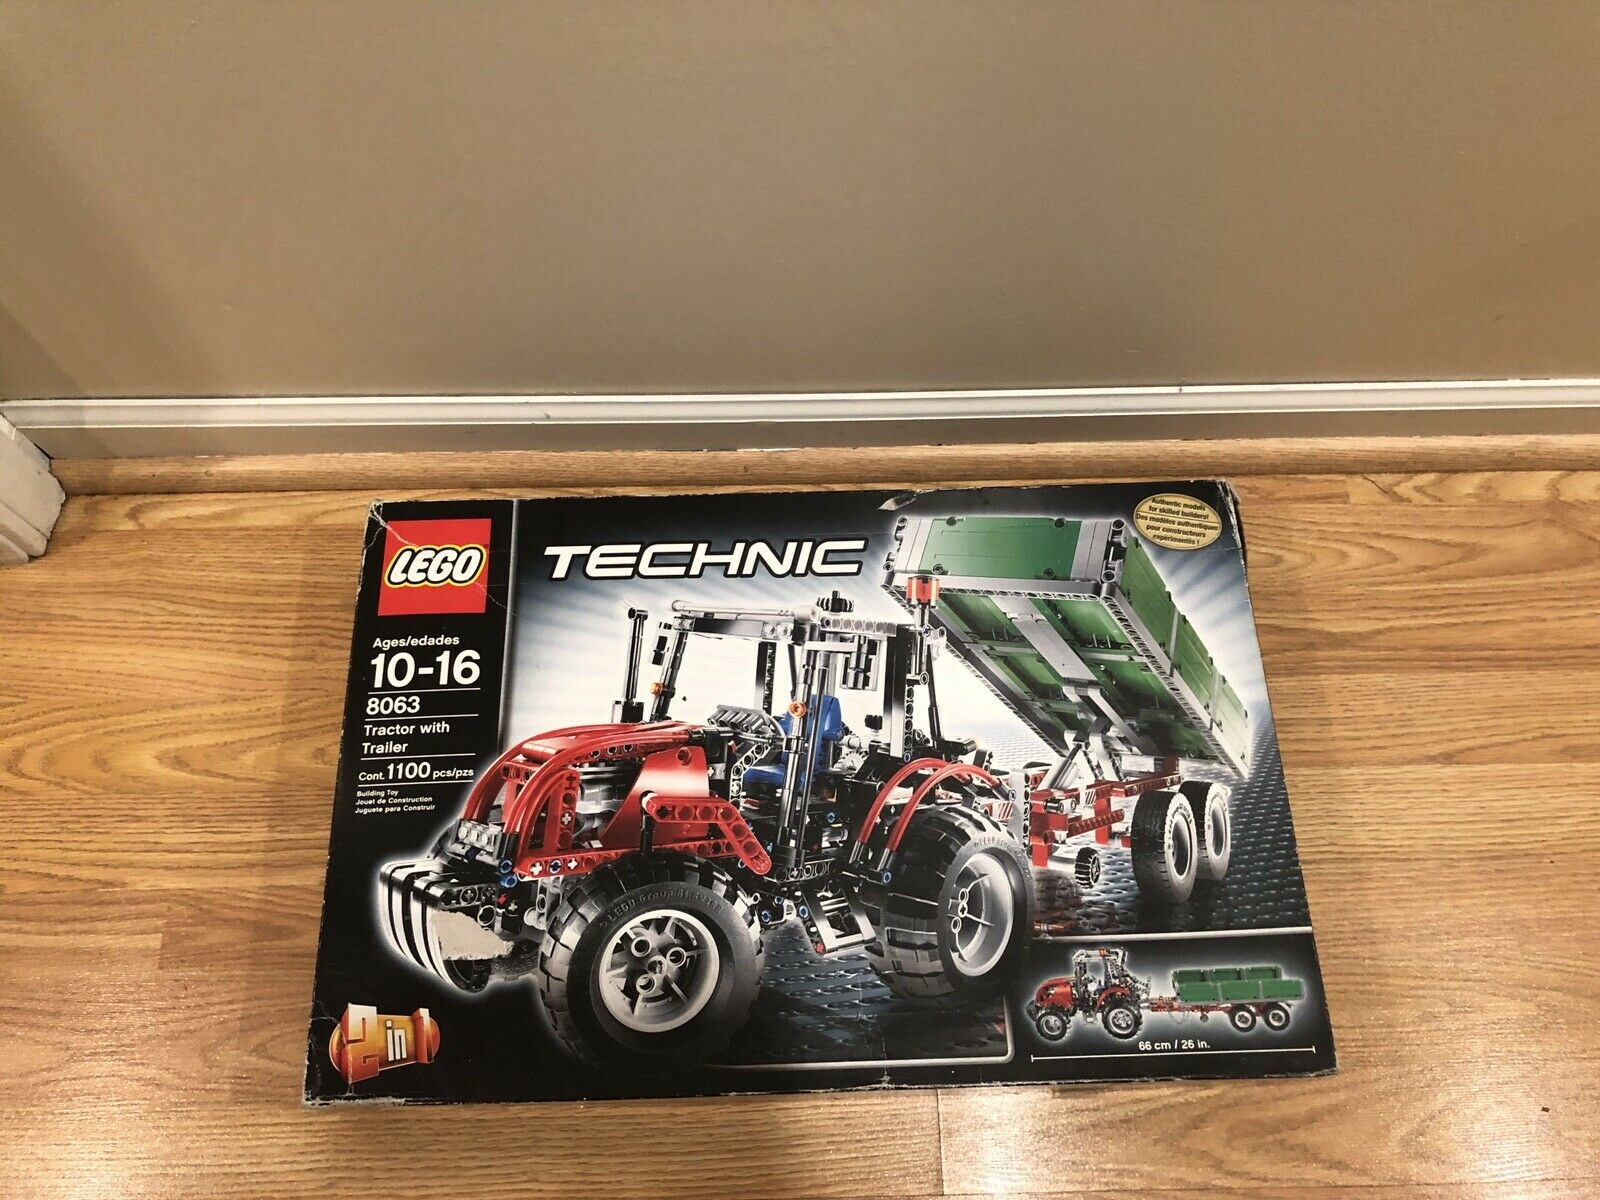 New in Very Good Condition Sealed Box - Lego Technic 8063 Tractor Trailer Set